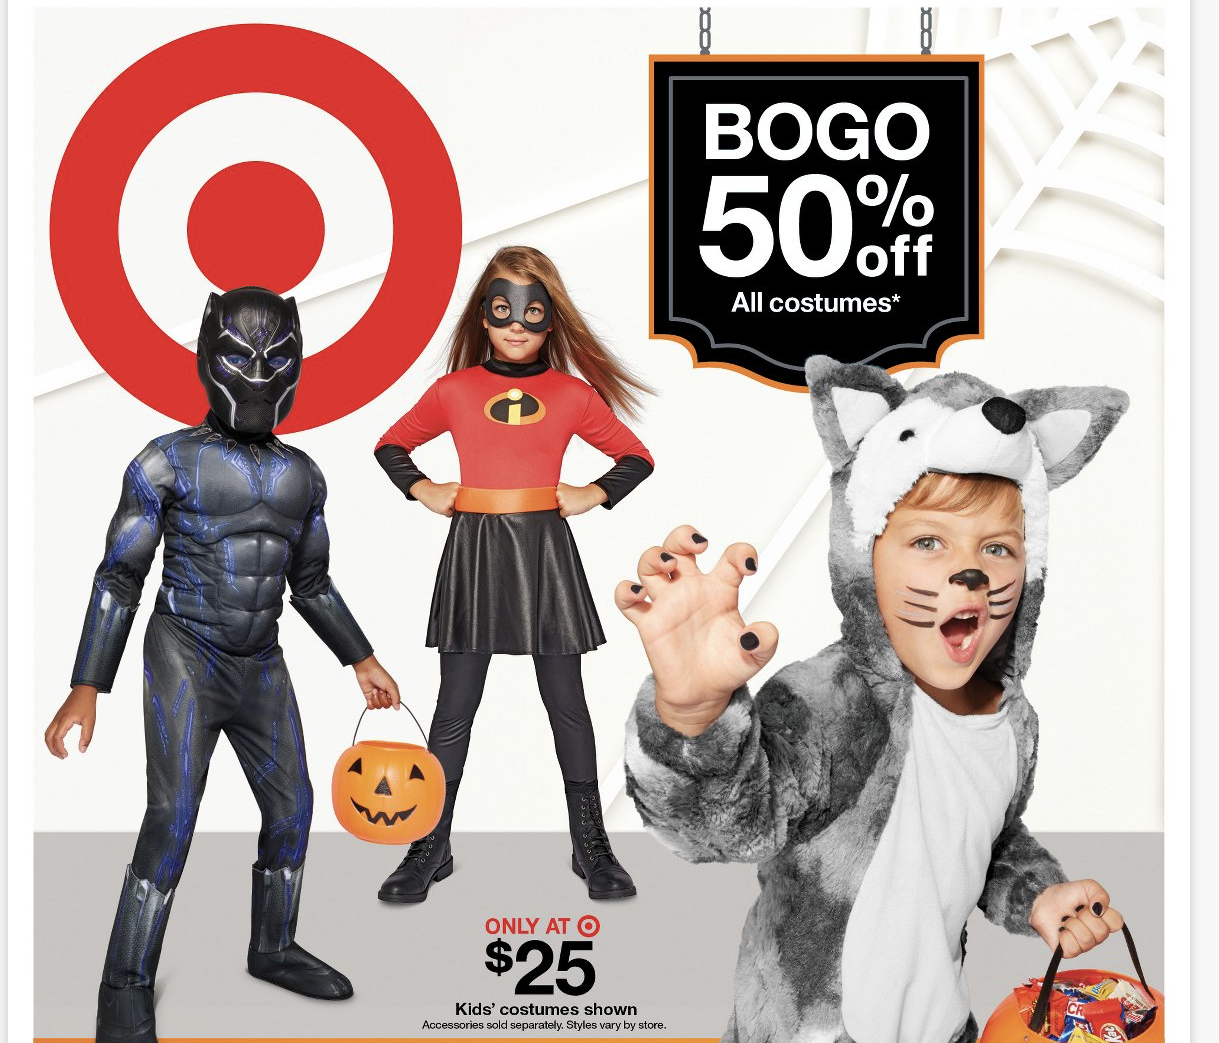 halloween costumes buy one get one 50% off at target! pantry overflow